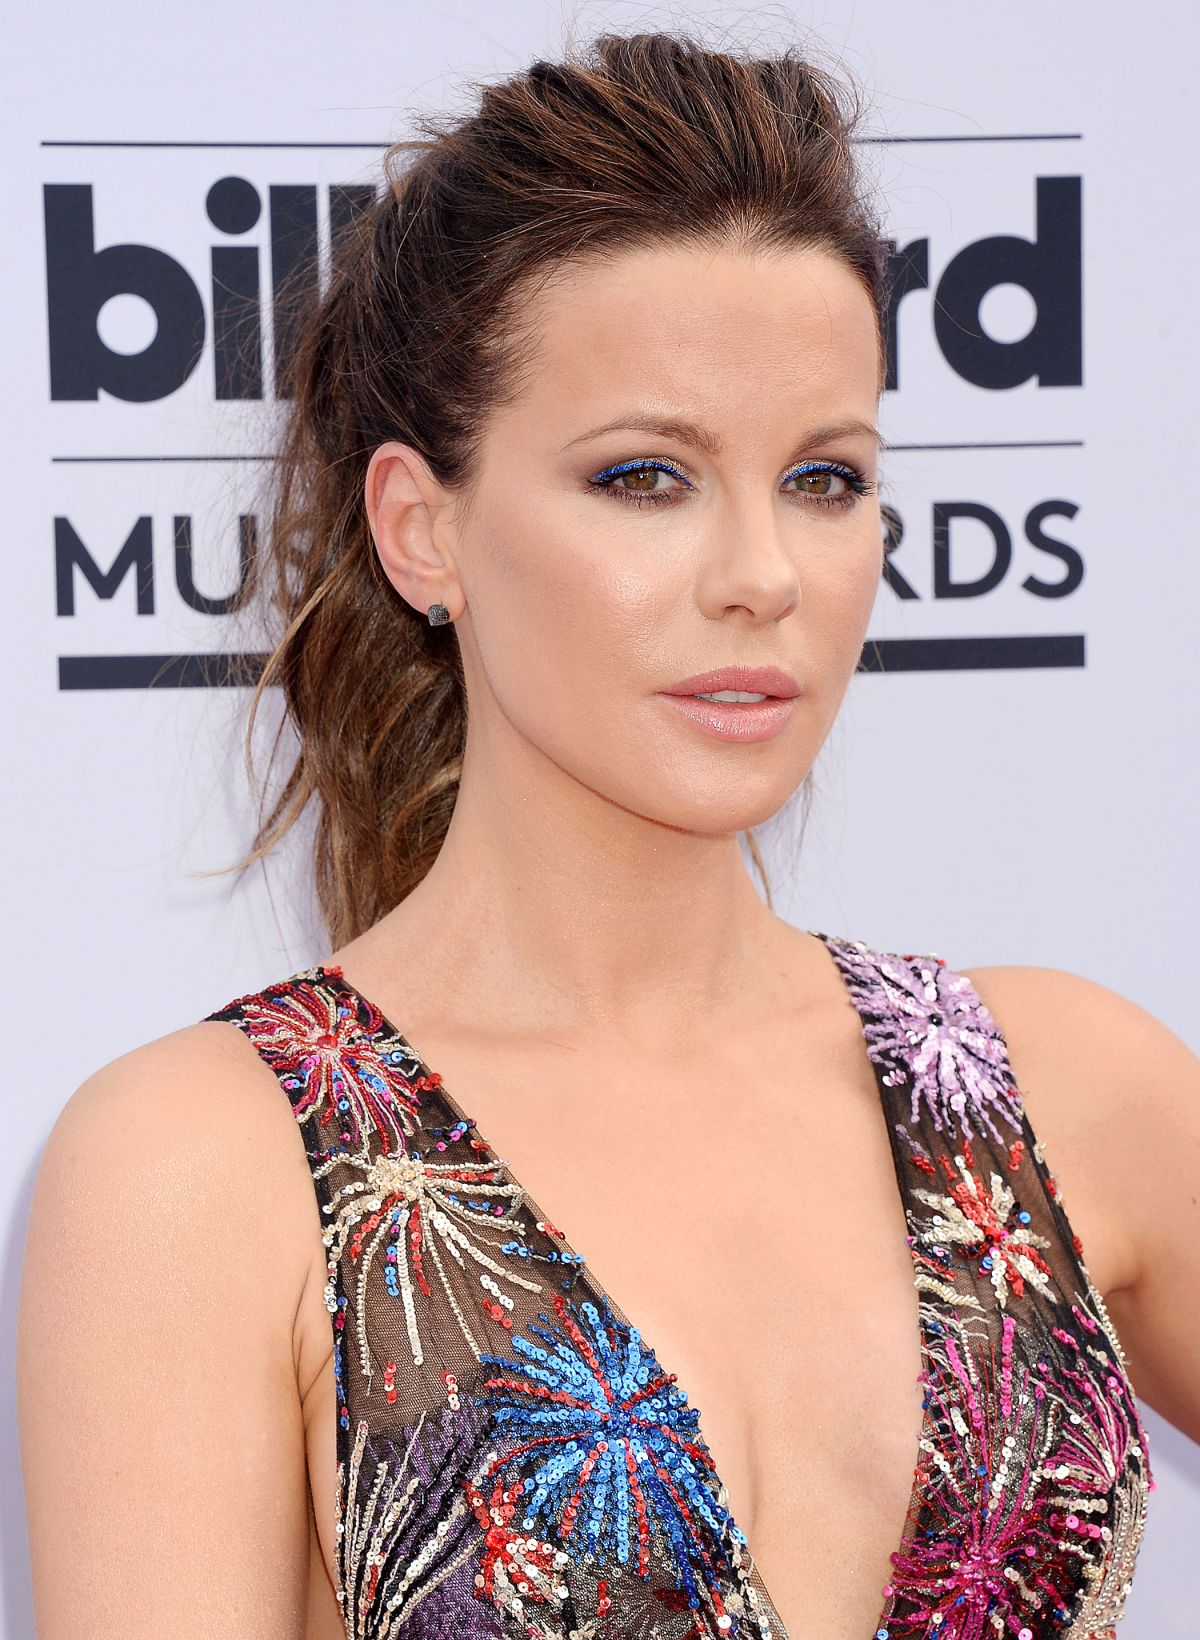 KATE BECKINSALE at Billboard Music Awards 2017 in Las Vegas 05/21/2017